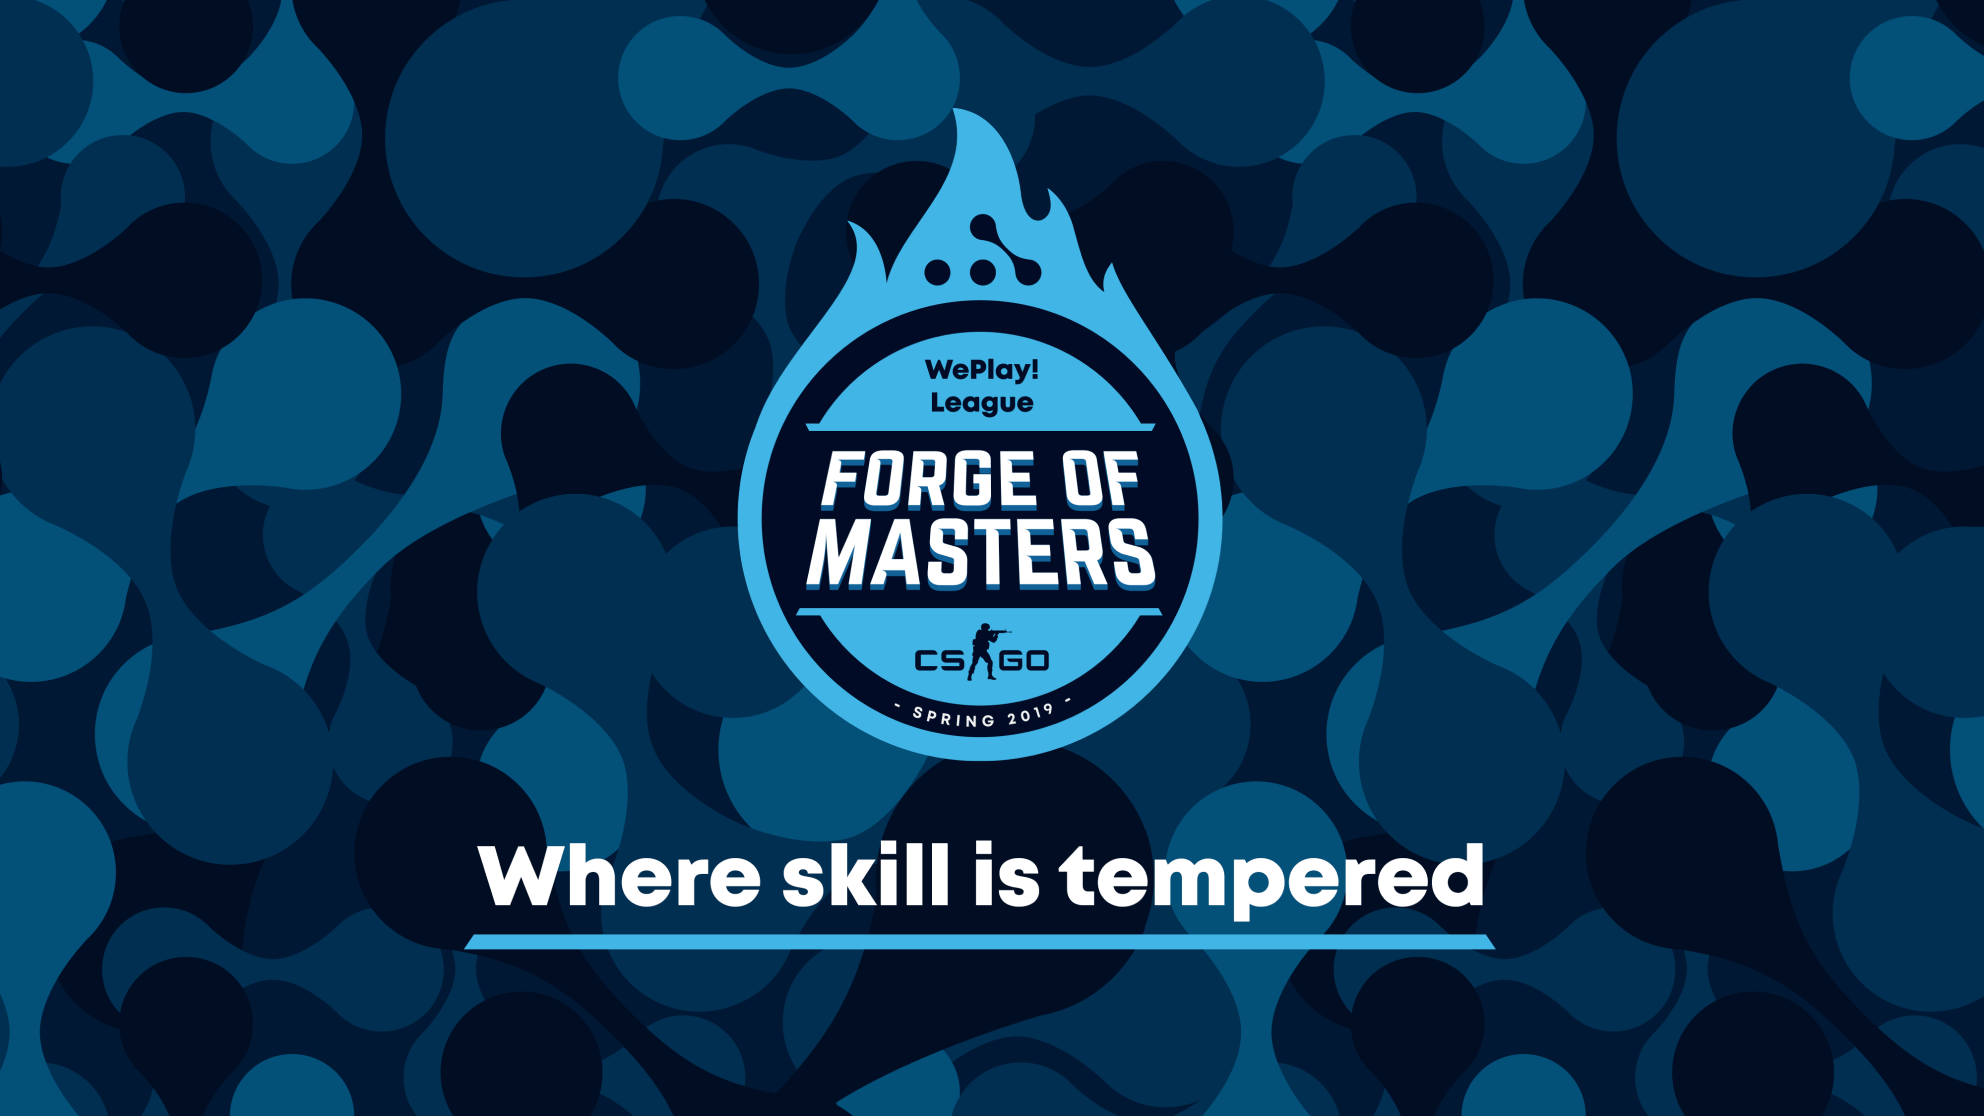 Forge of Masters WePlay! League Season 1